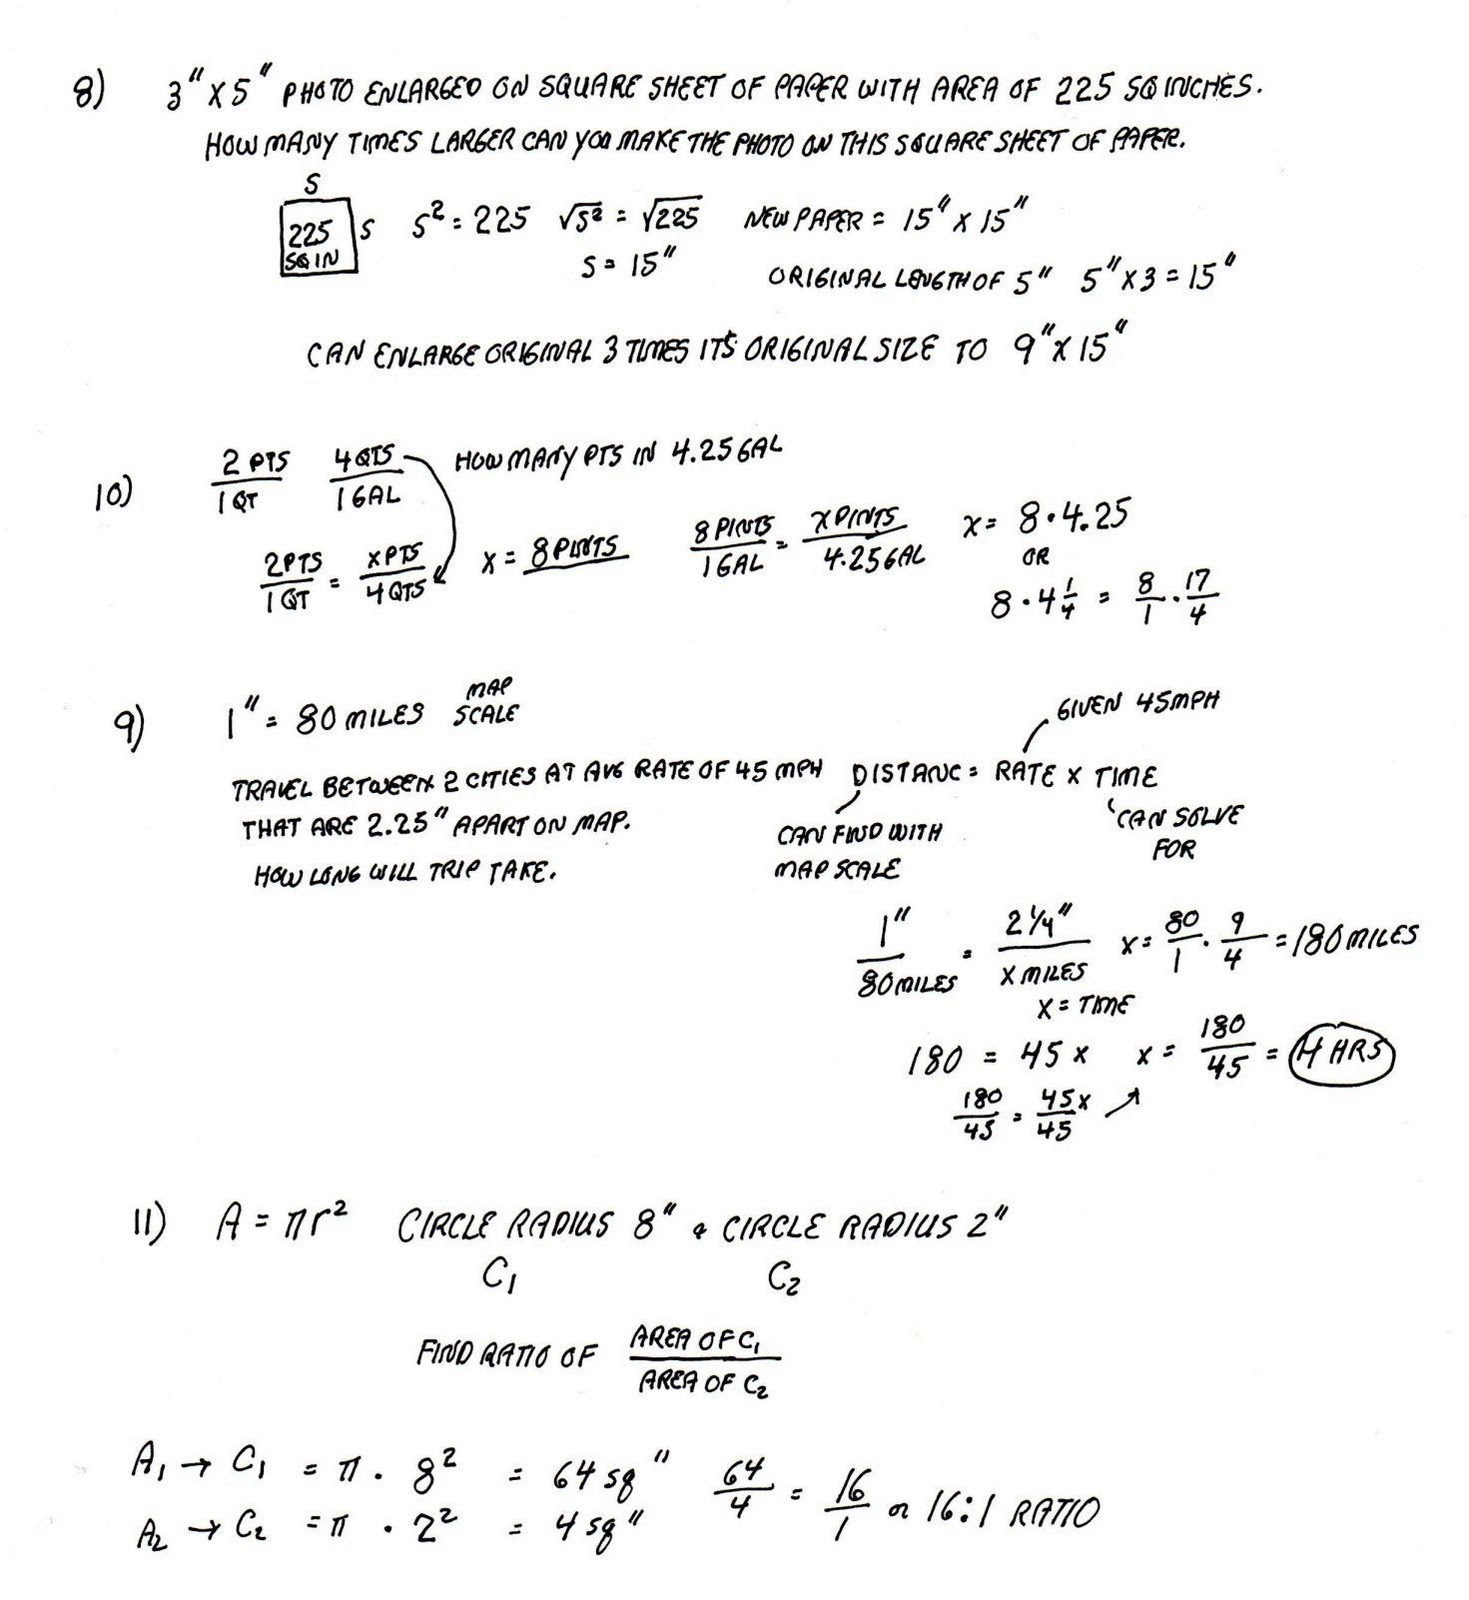 Cobb Adult Ed Math Solutions To May 26 Ratio And Proportion Problems